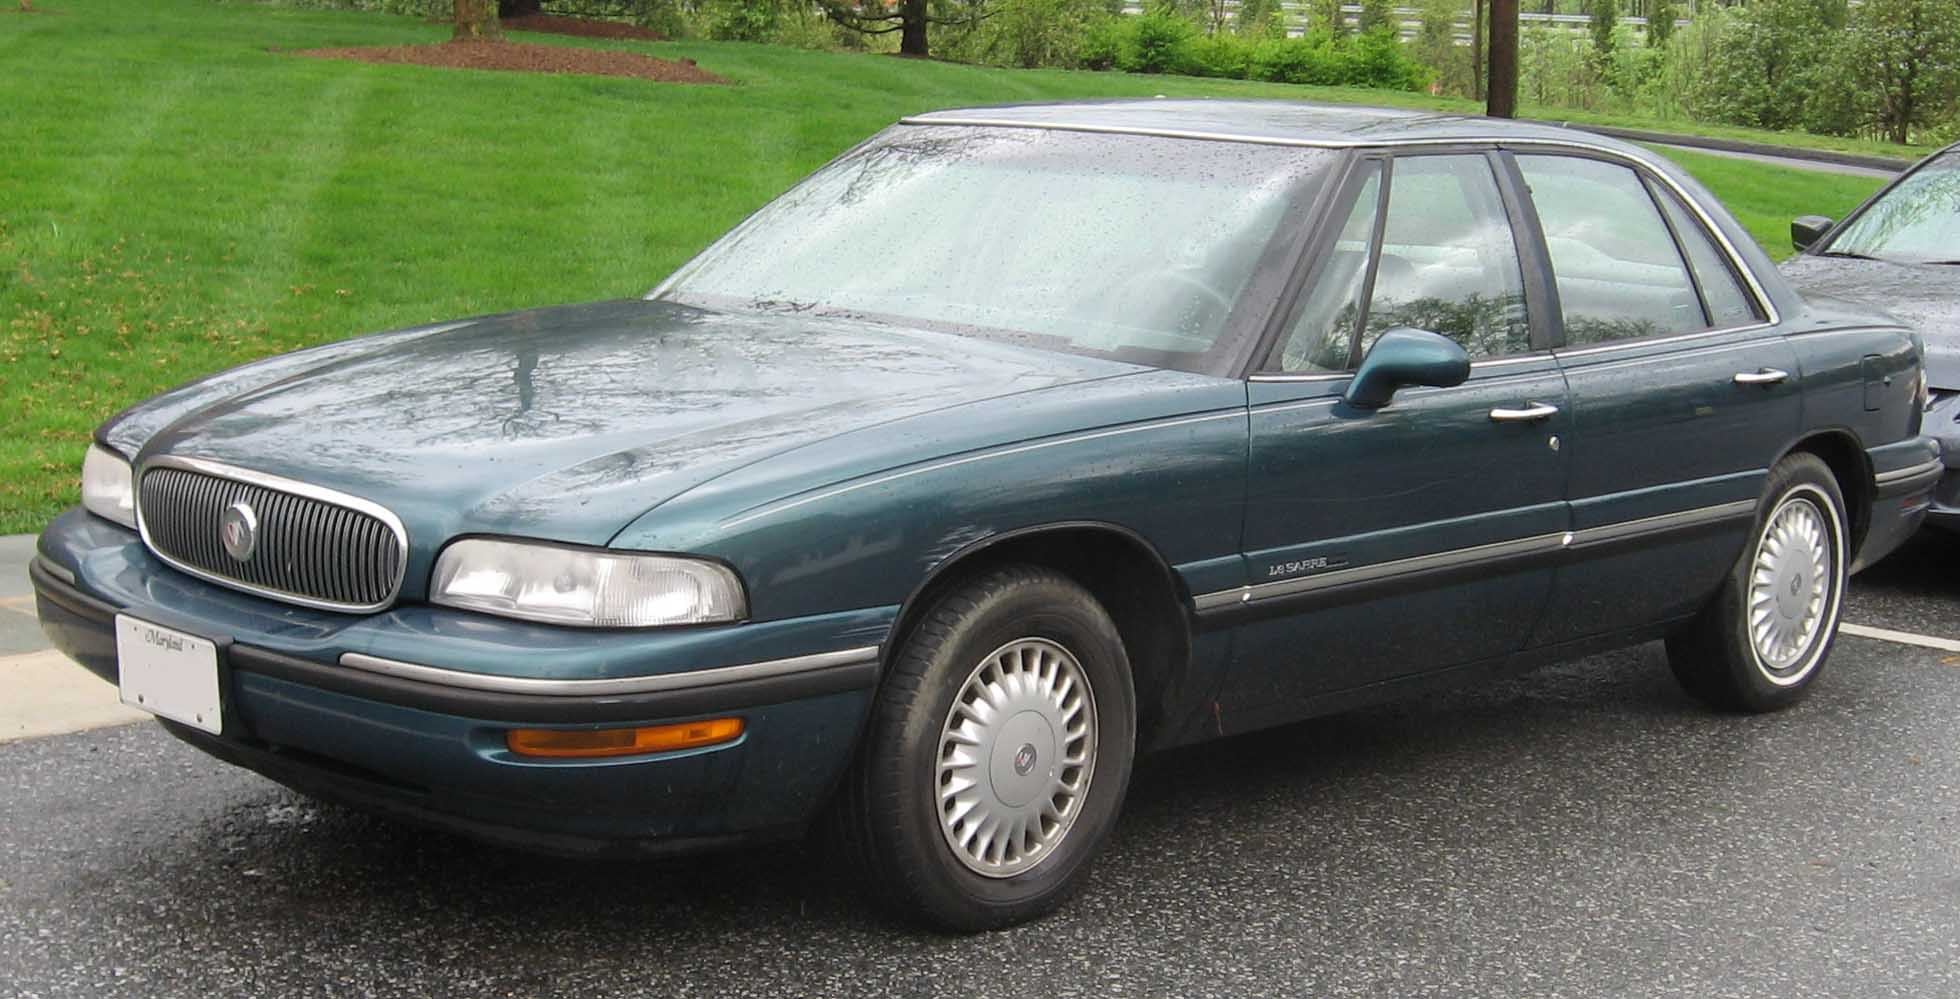 hight resolution of  1999 buick lesabre custom photo 2